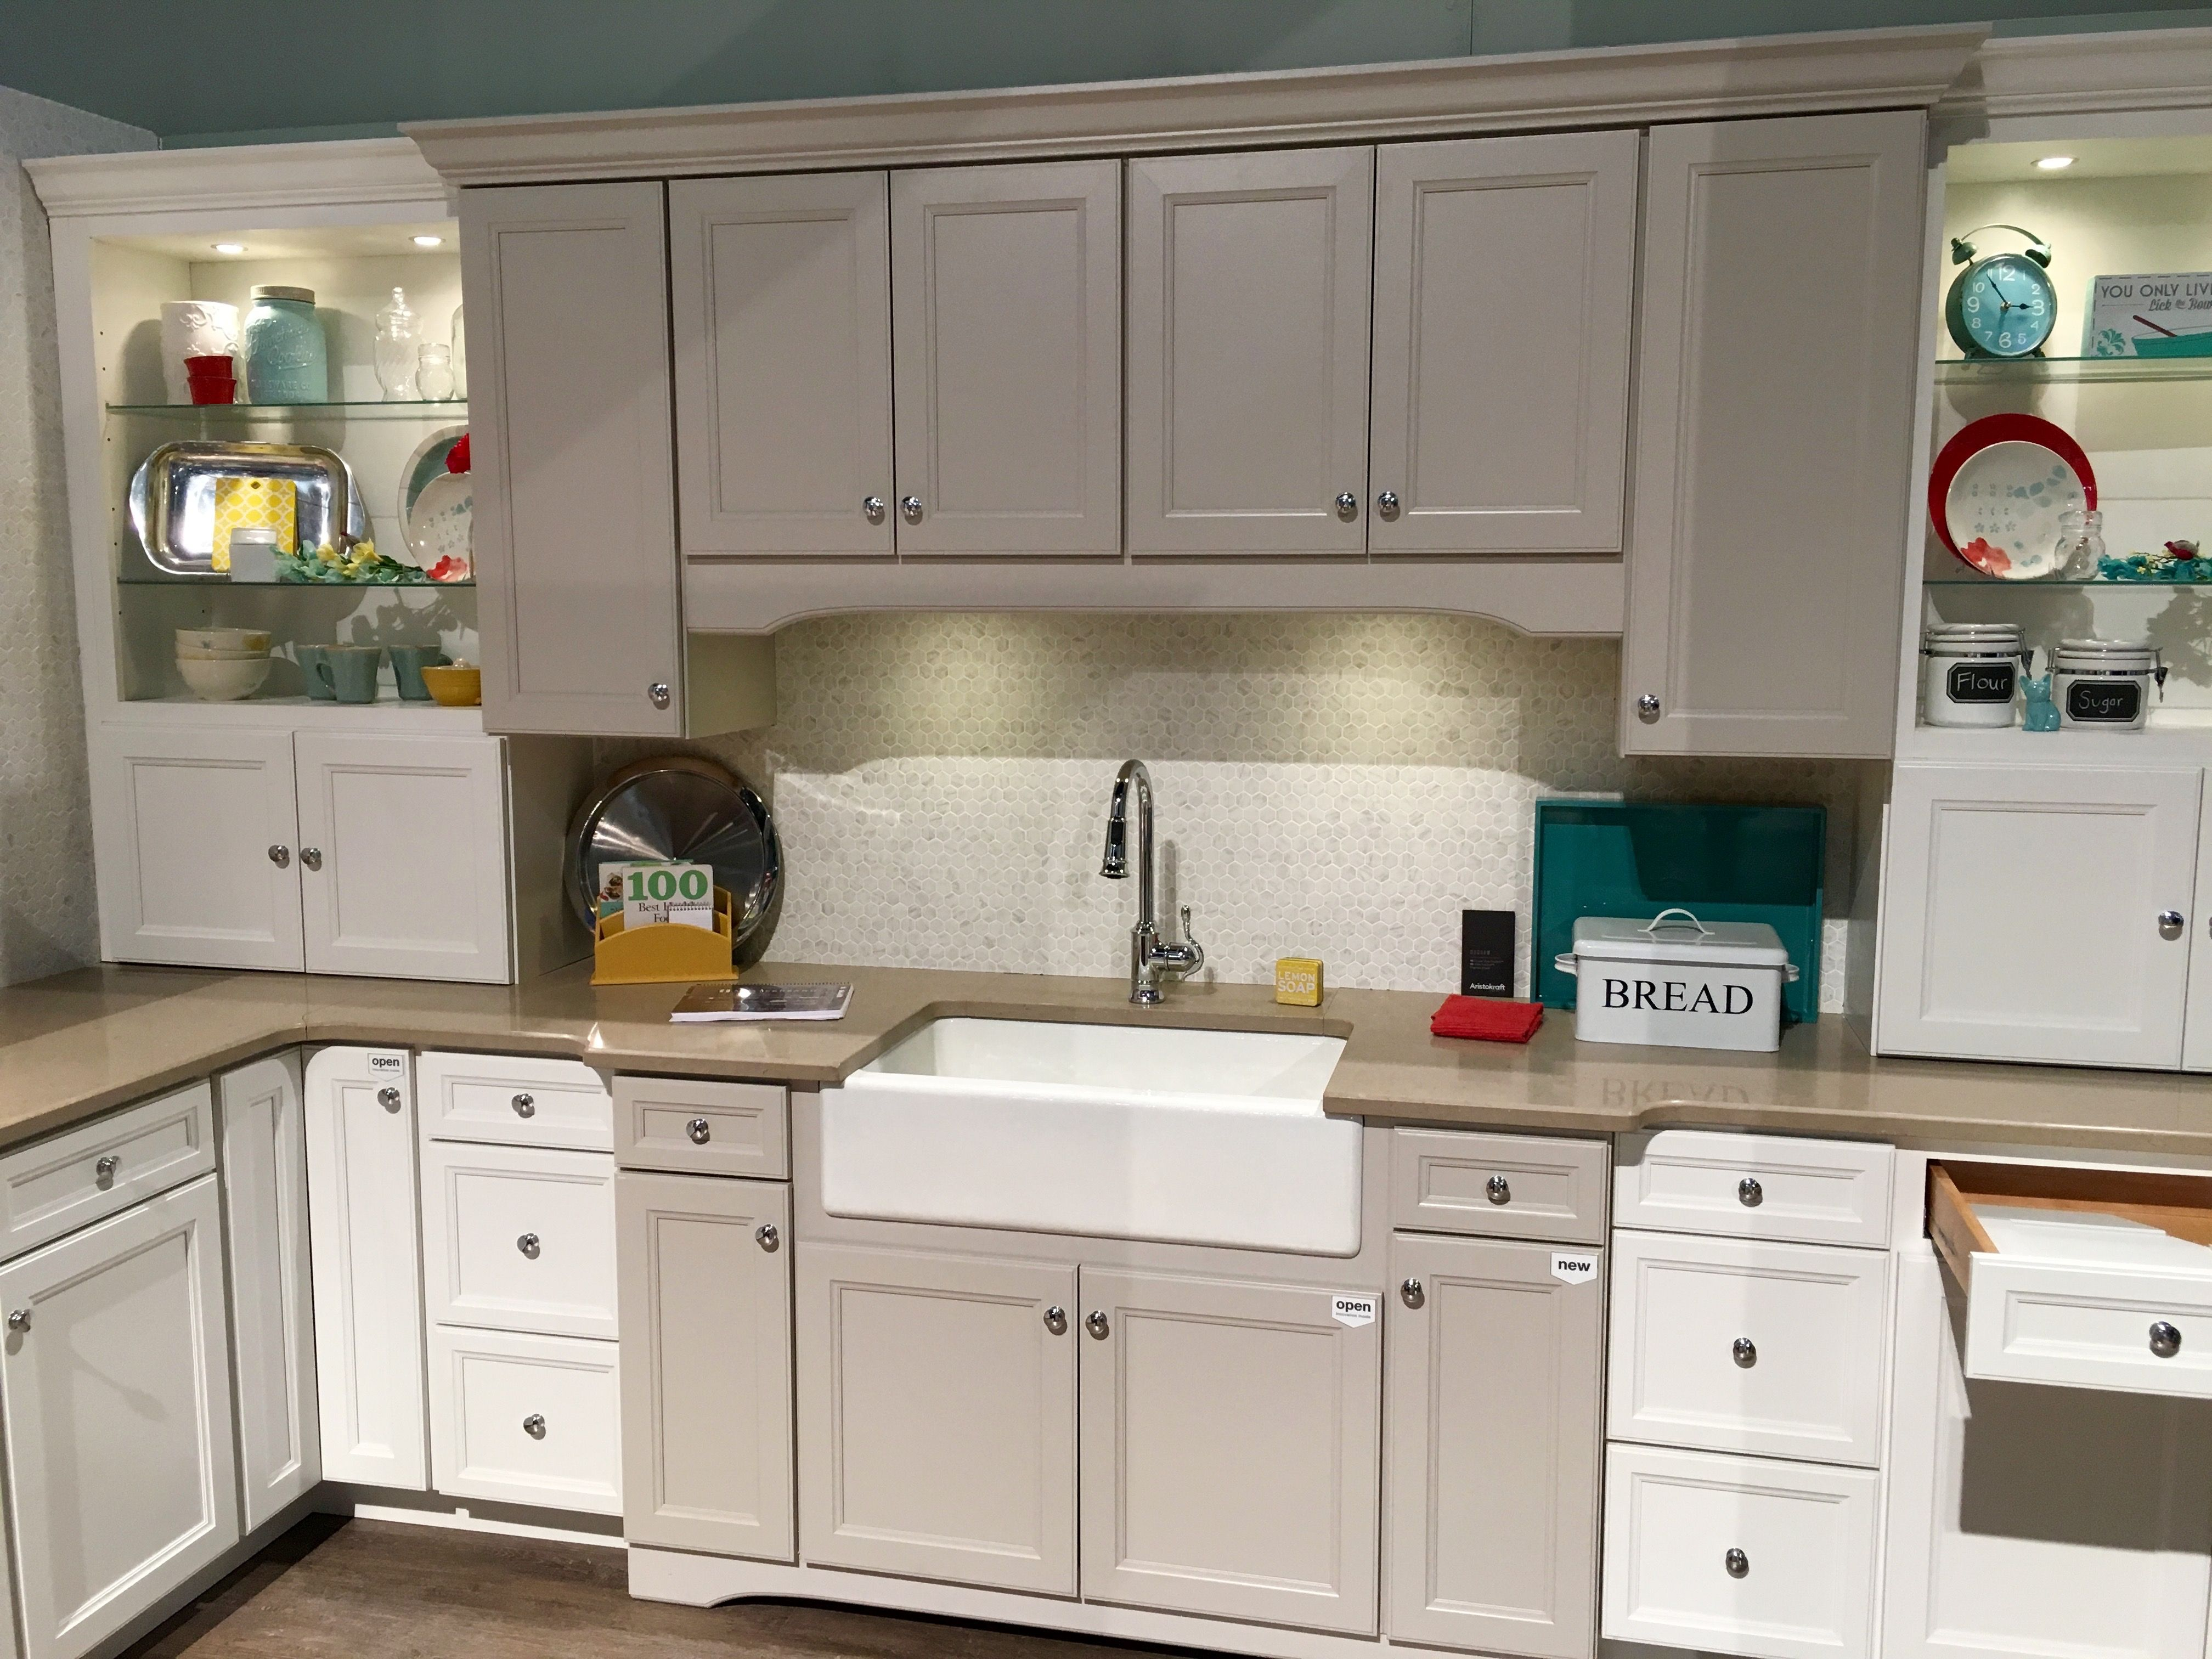 The Latest Kitchen Trends We Have Seen In 2016 Is Combining Cabinet Colors Learn